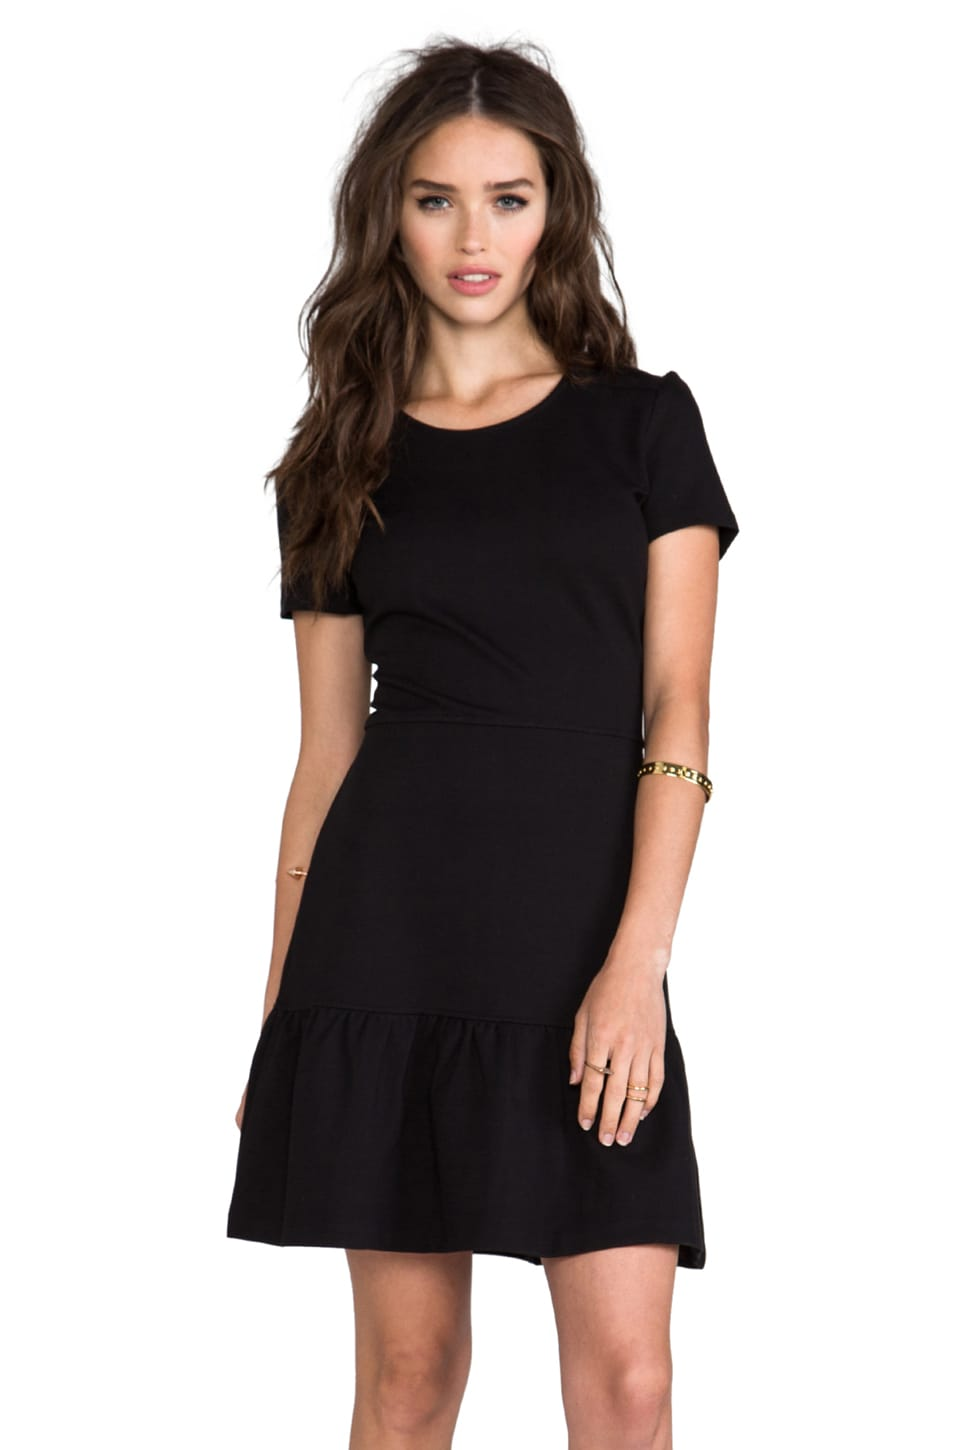 Juicy Couture Solid Ponte Flirty Dress in Pitch Black